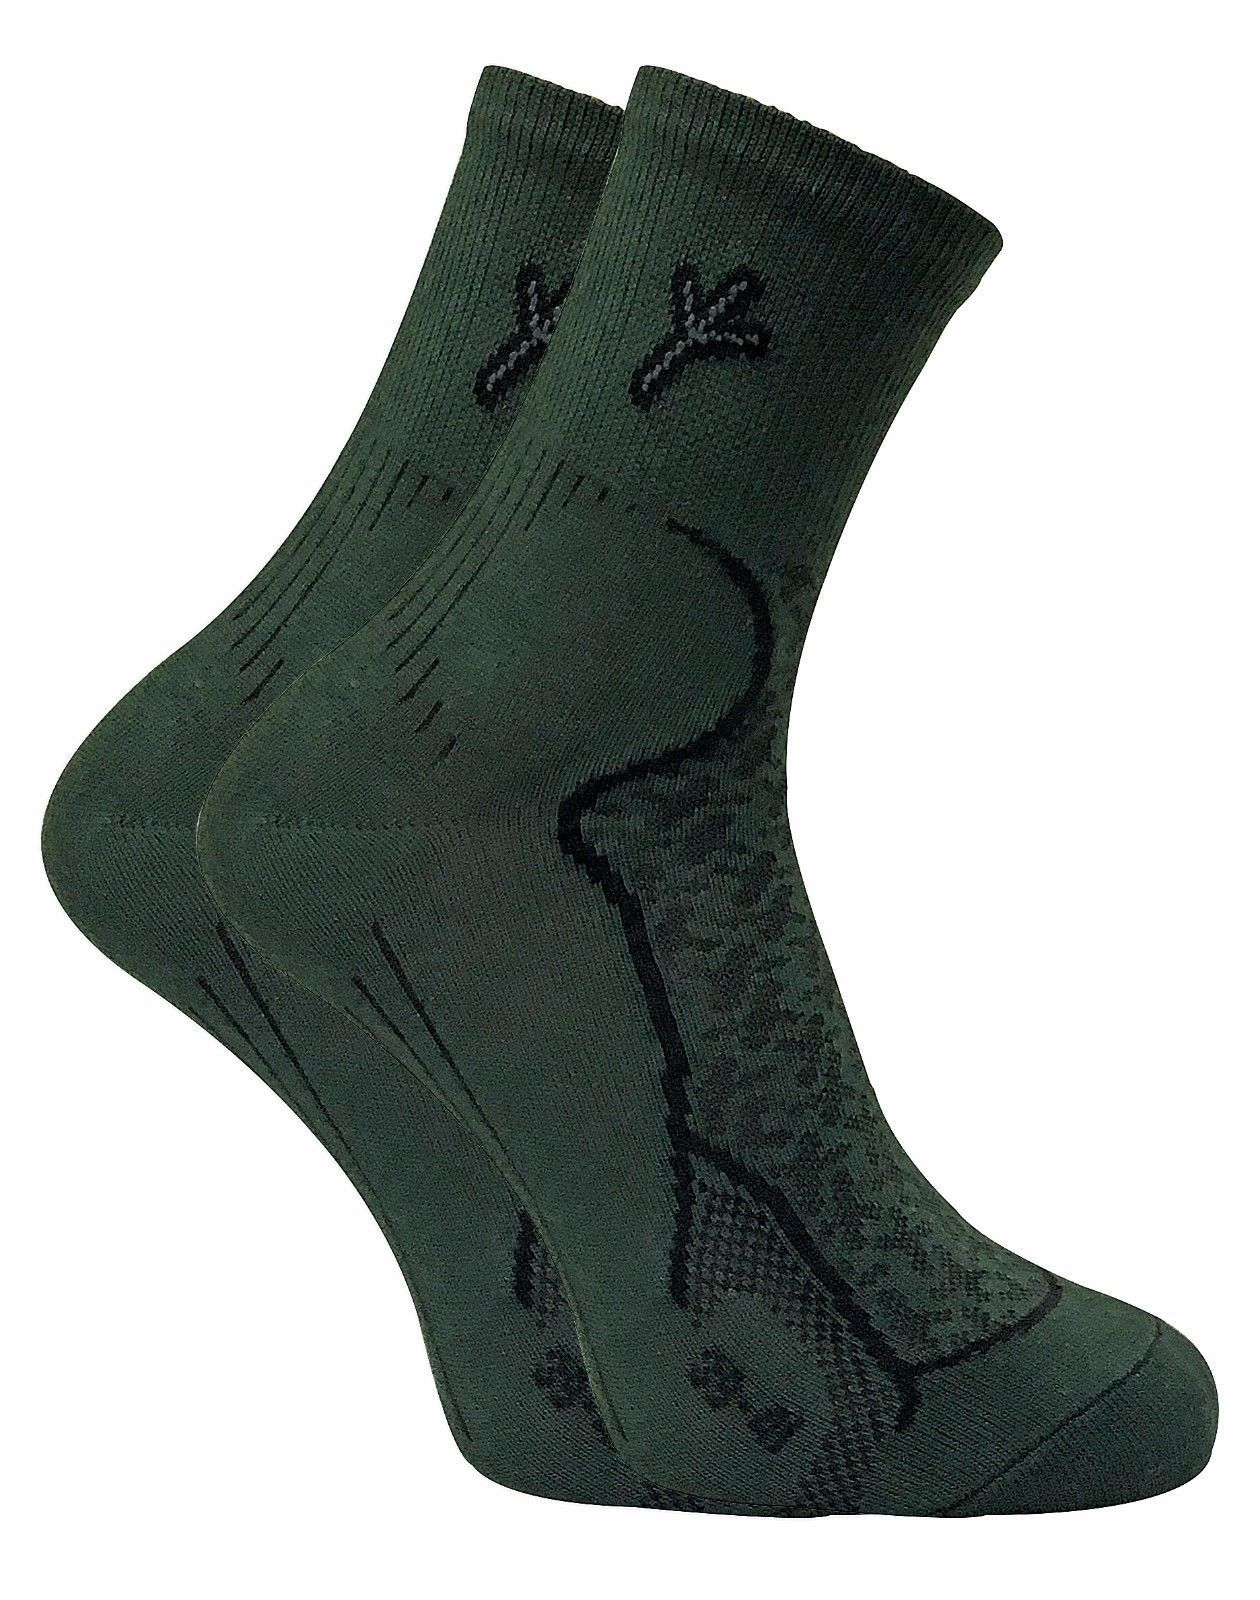 Primary image for Dr Hunter - 2 Pack Mens Antibacterial Anti Odor Cotton Green Hiking Boot Socks